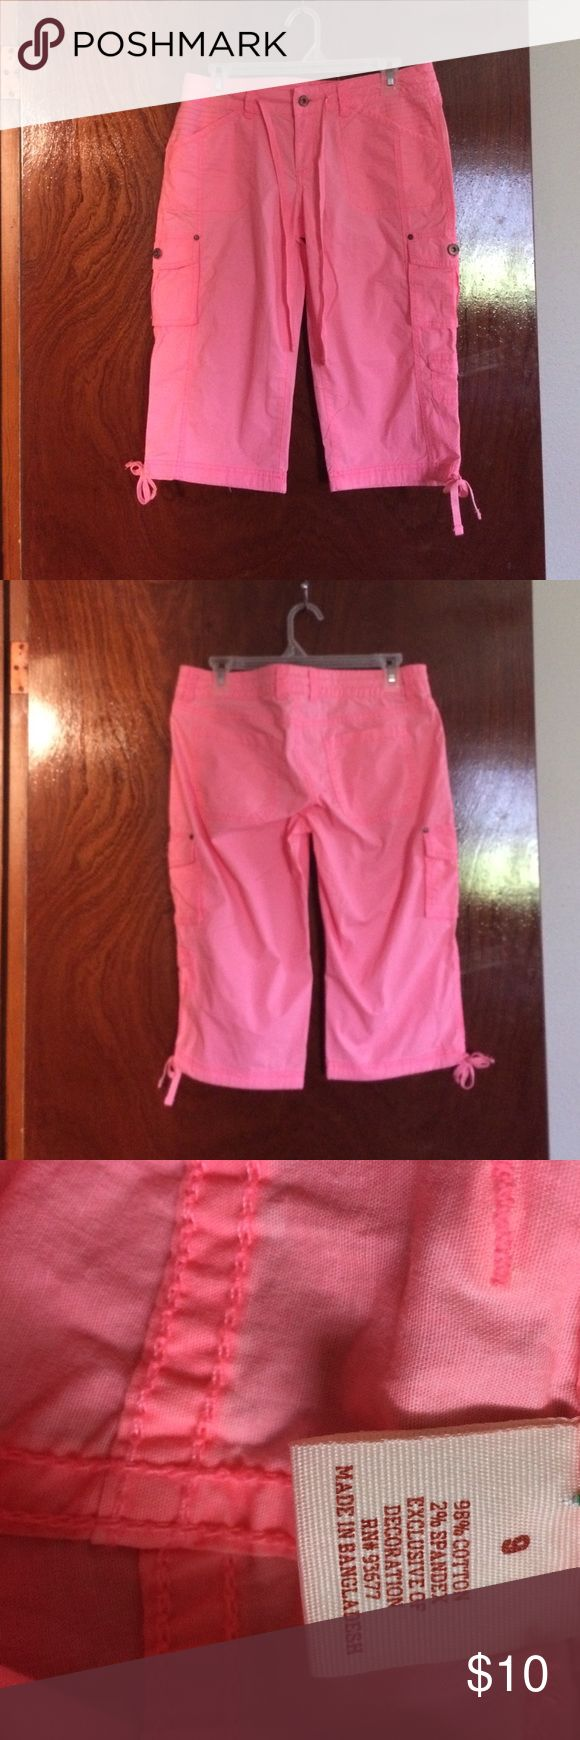 Coral capris Awsome fit great for spring arizona Pants Capris